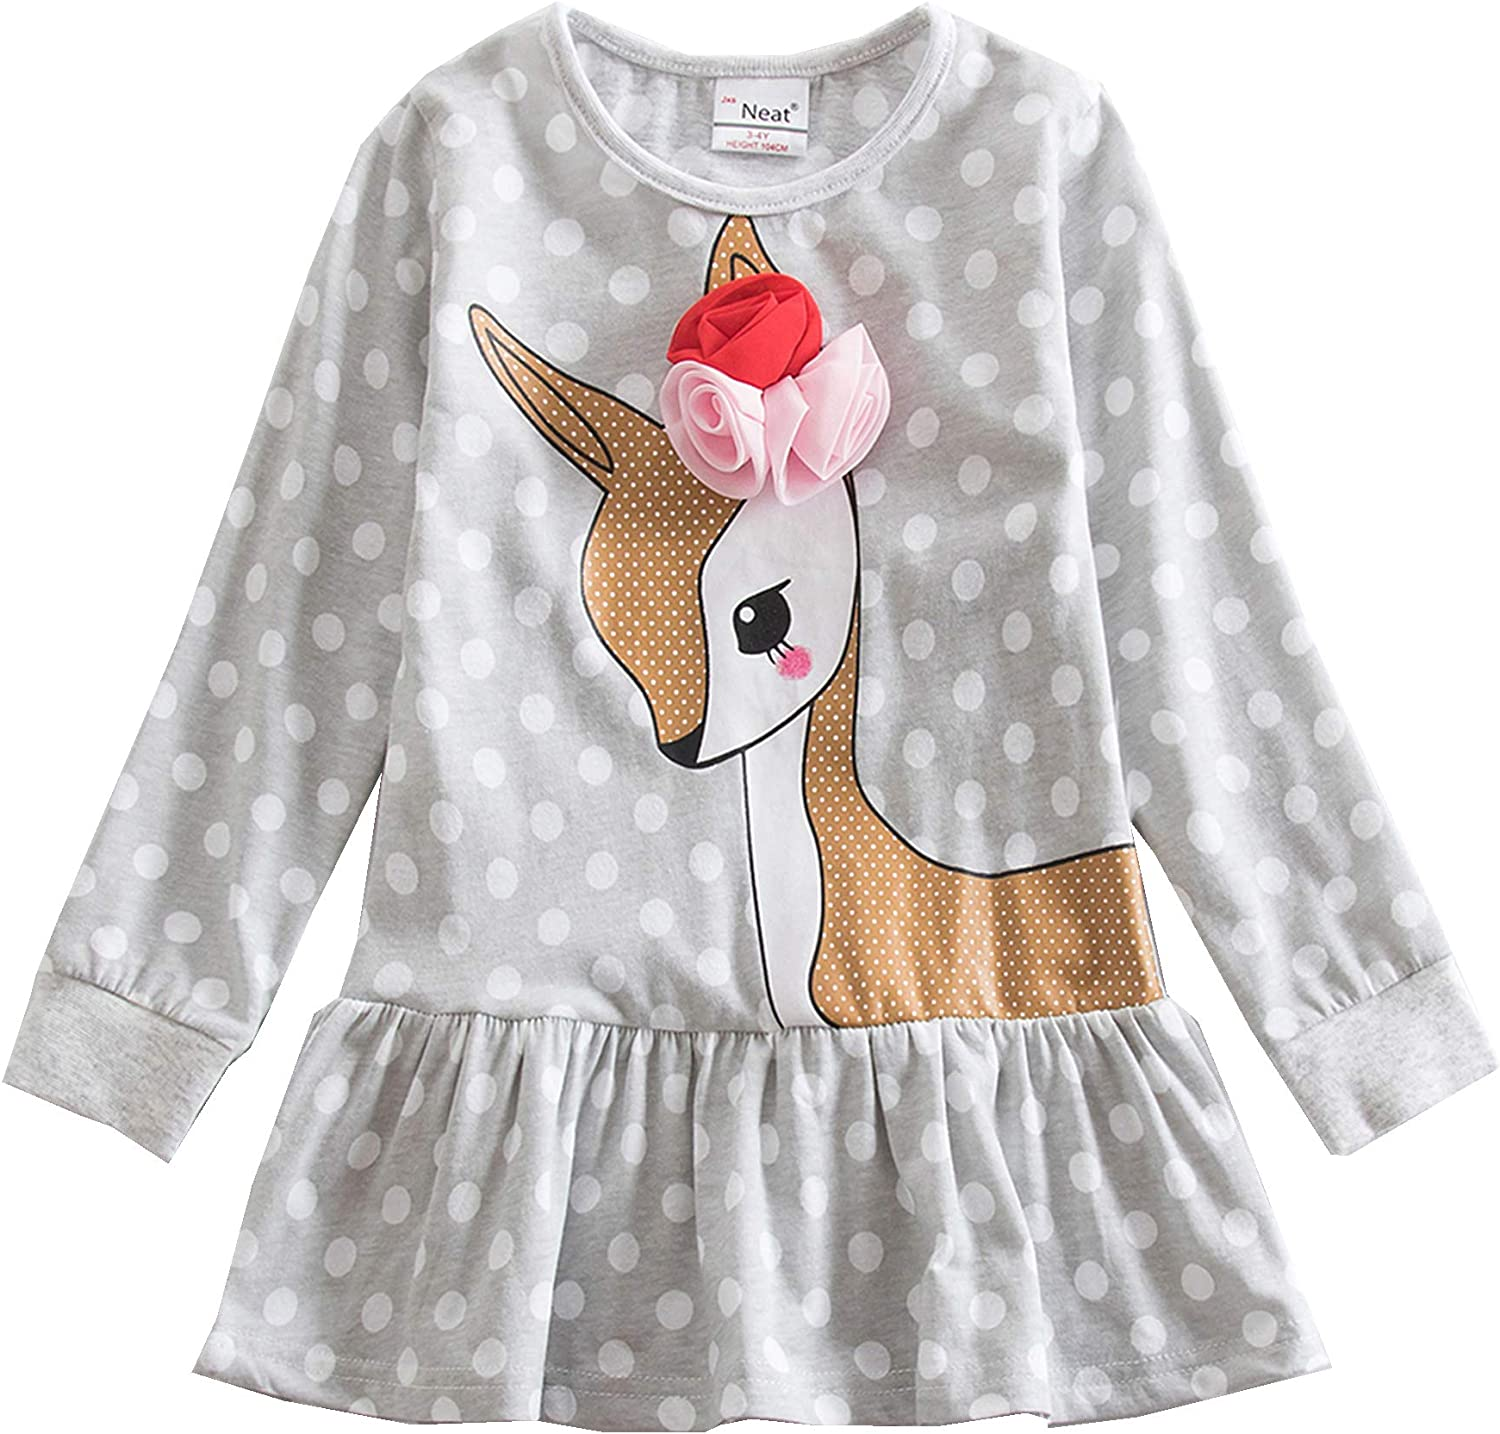 Toddler Girl Dress Cotton Long Sleeve Dress for Girls Unicorn Party Tunic Dress